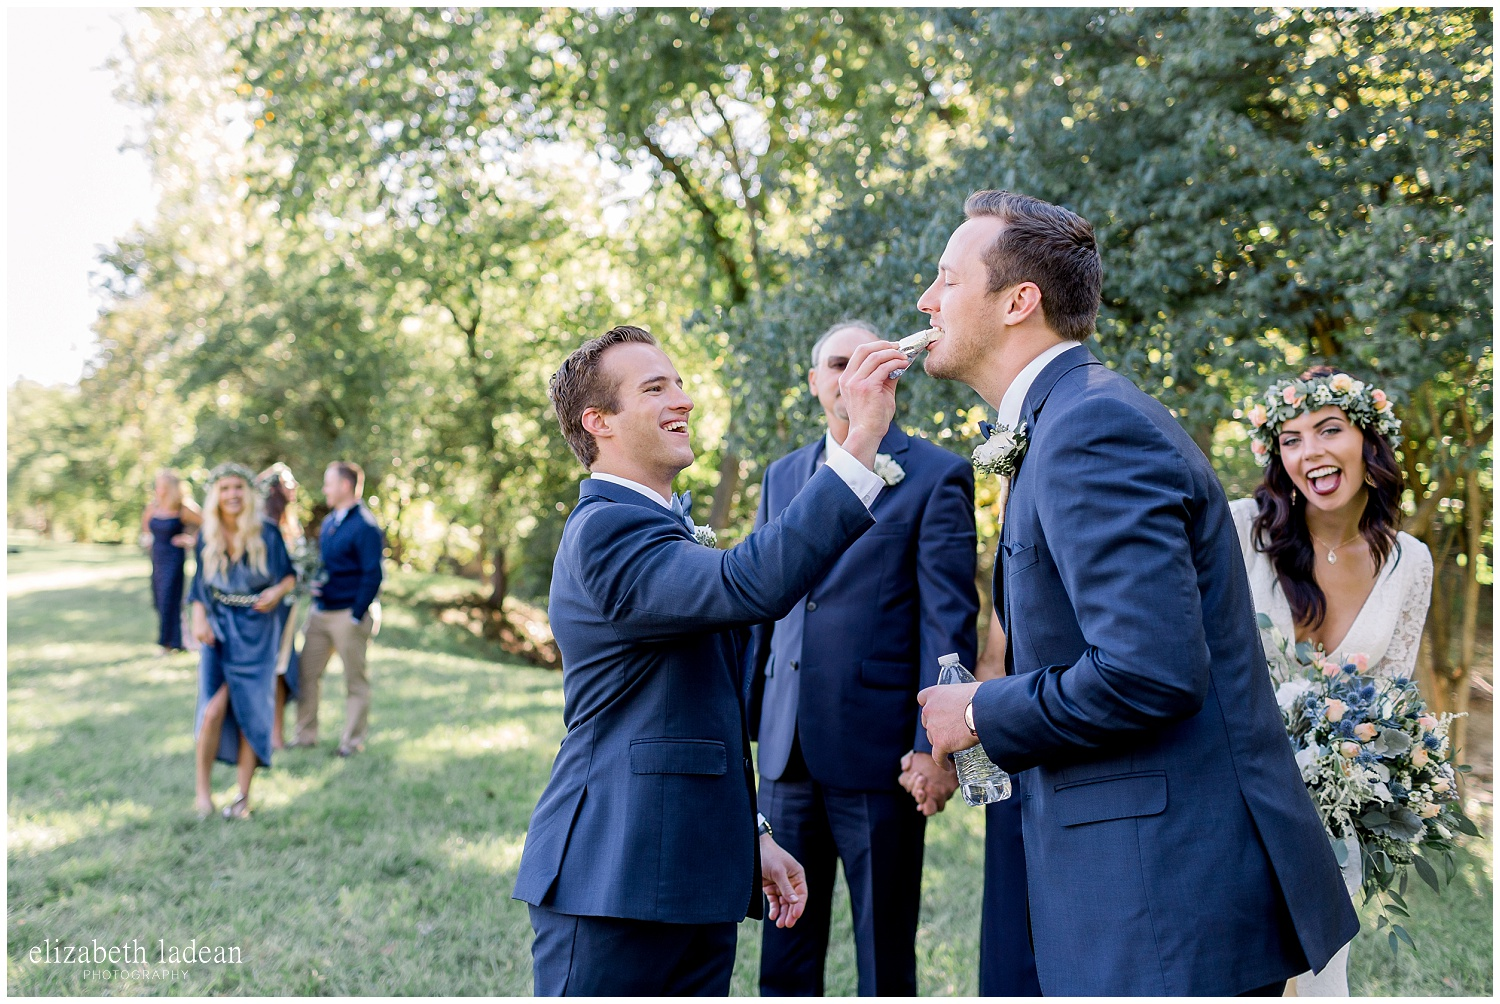 -behind-the-scenes-of-a-wedding-photographer-2018-elizabeth-ladean-photography-photo_3540.jpg